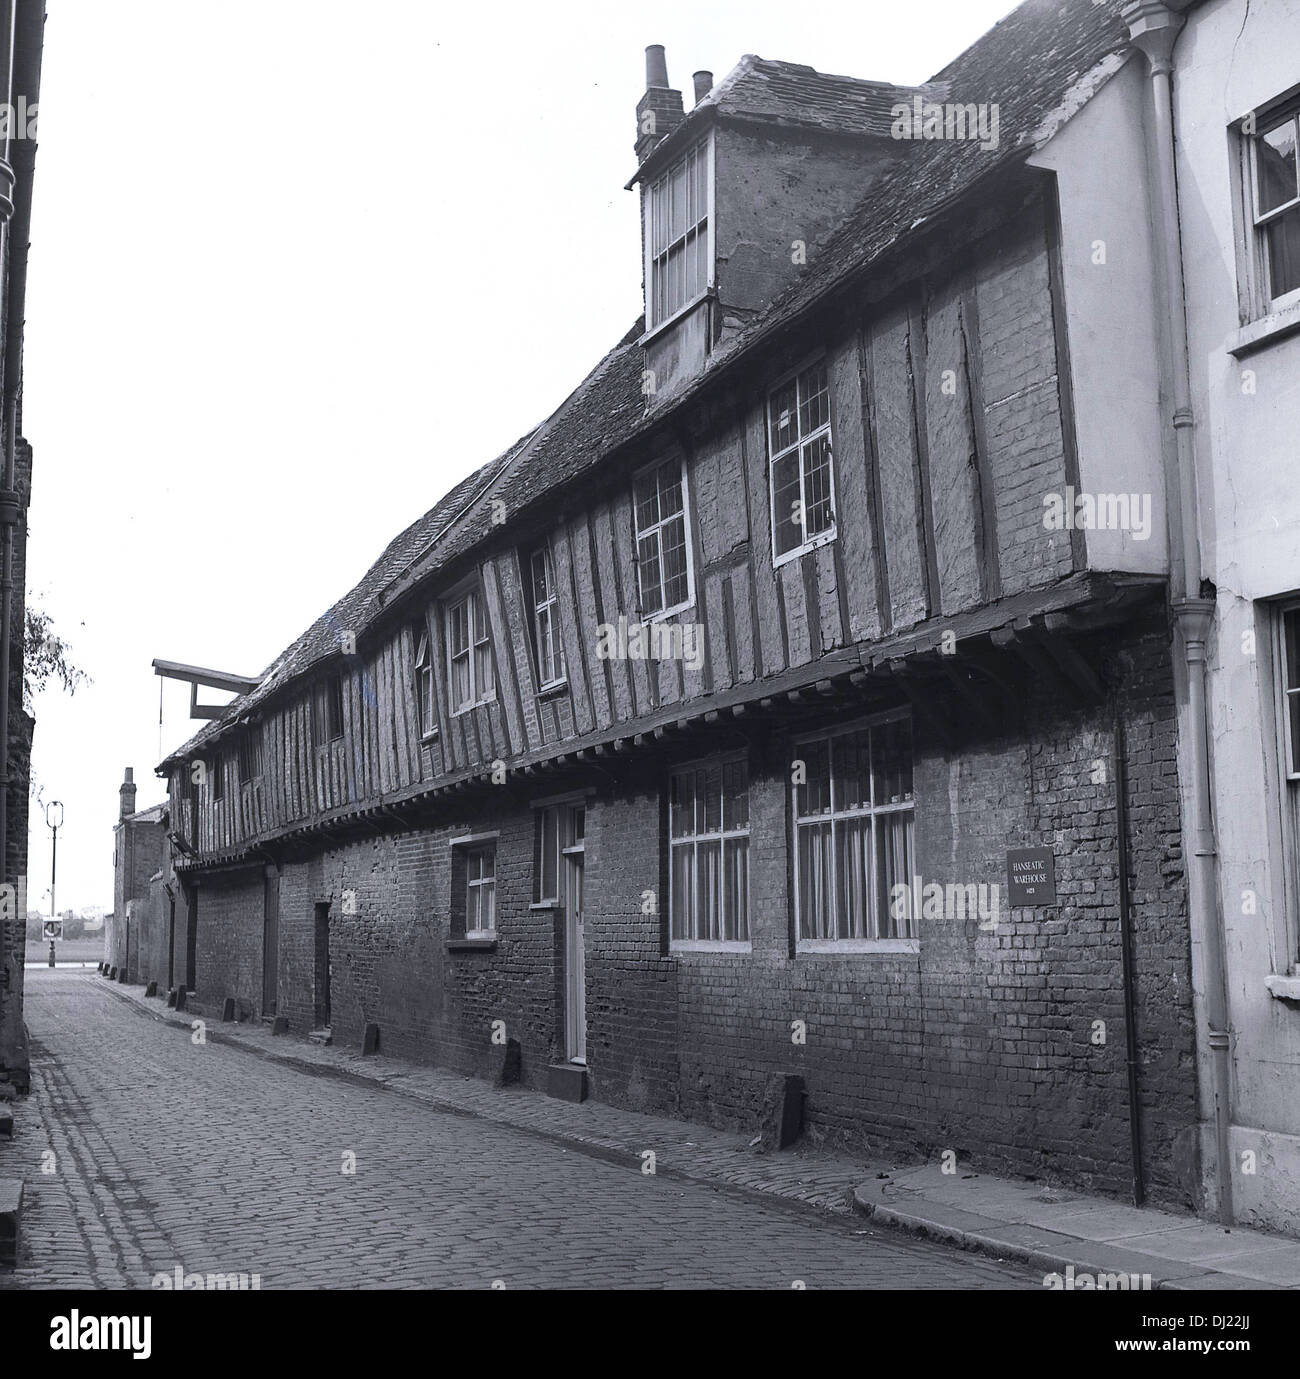 1950s, historical, row of ancient Elizabethan houses. - Stock Image